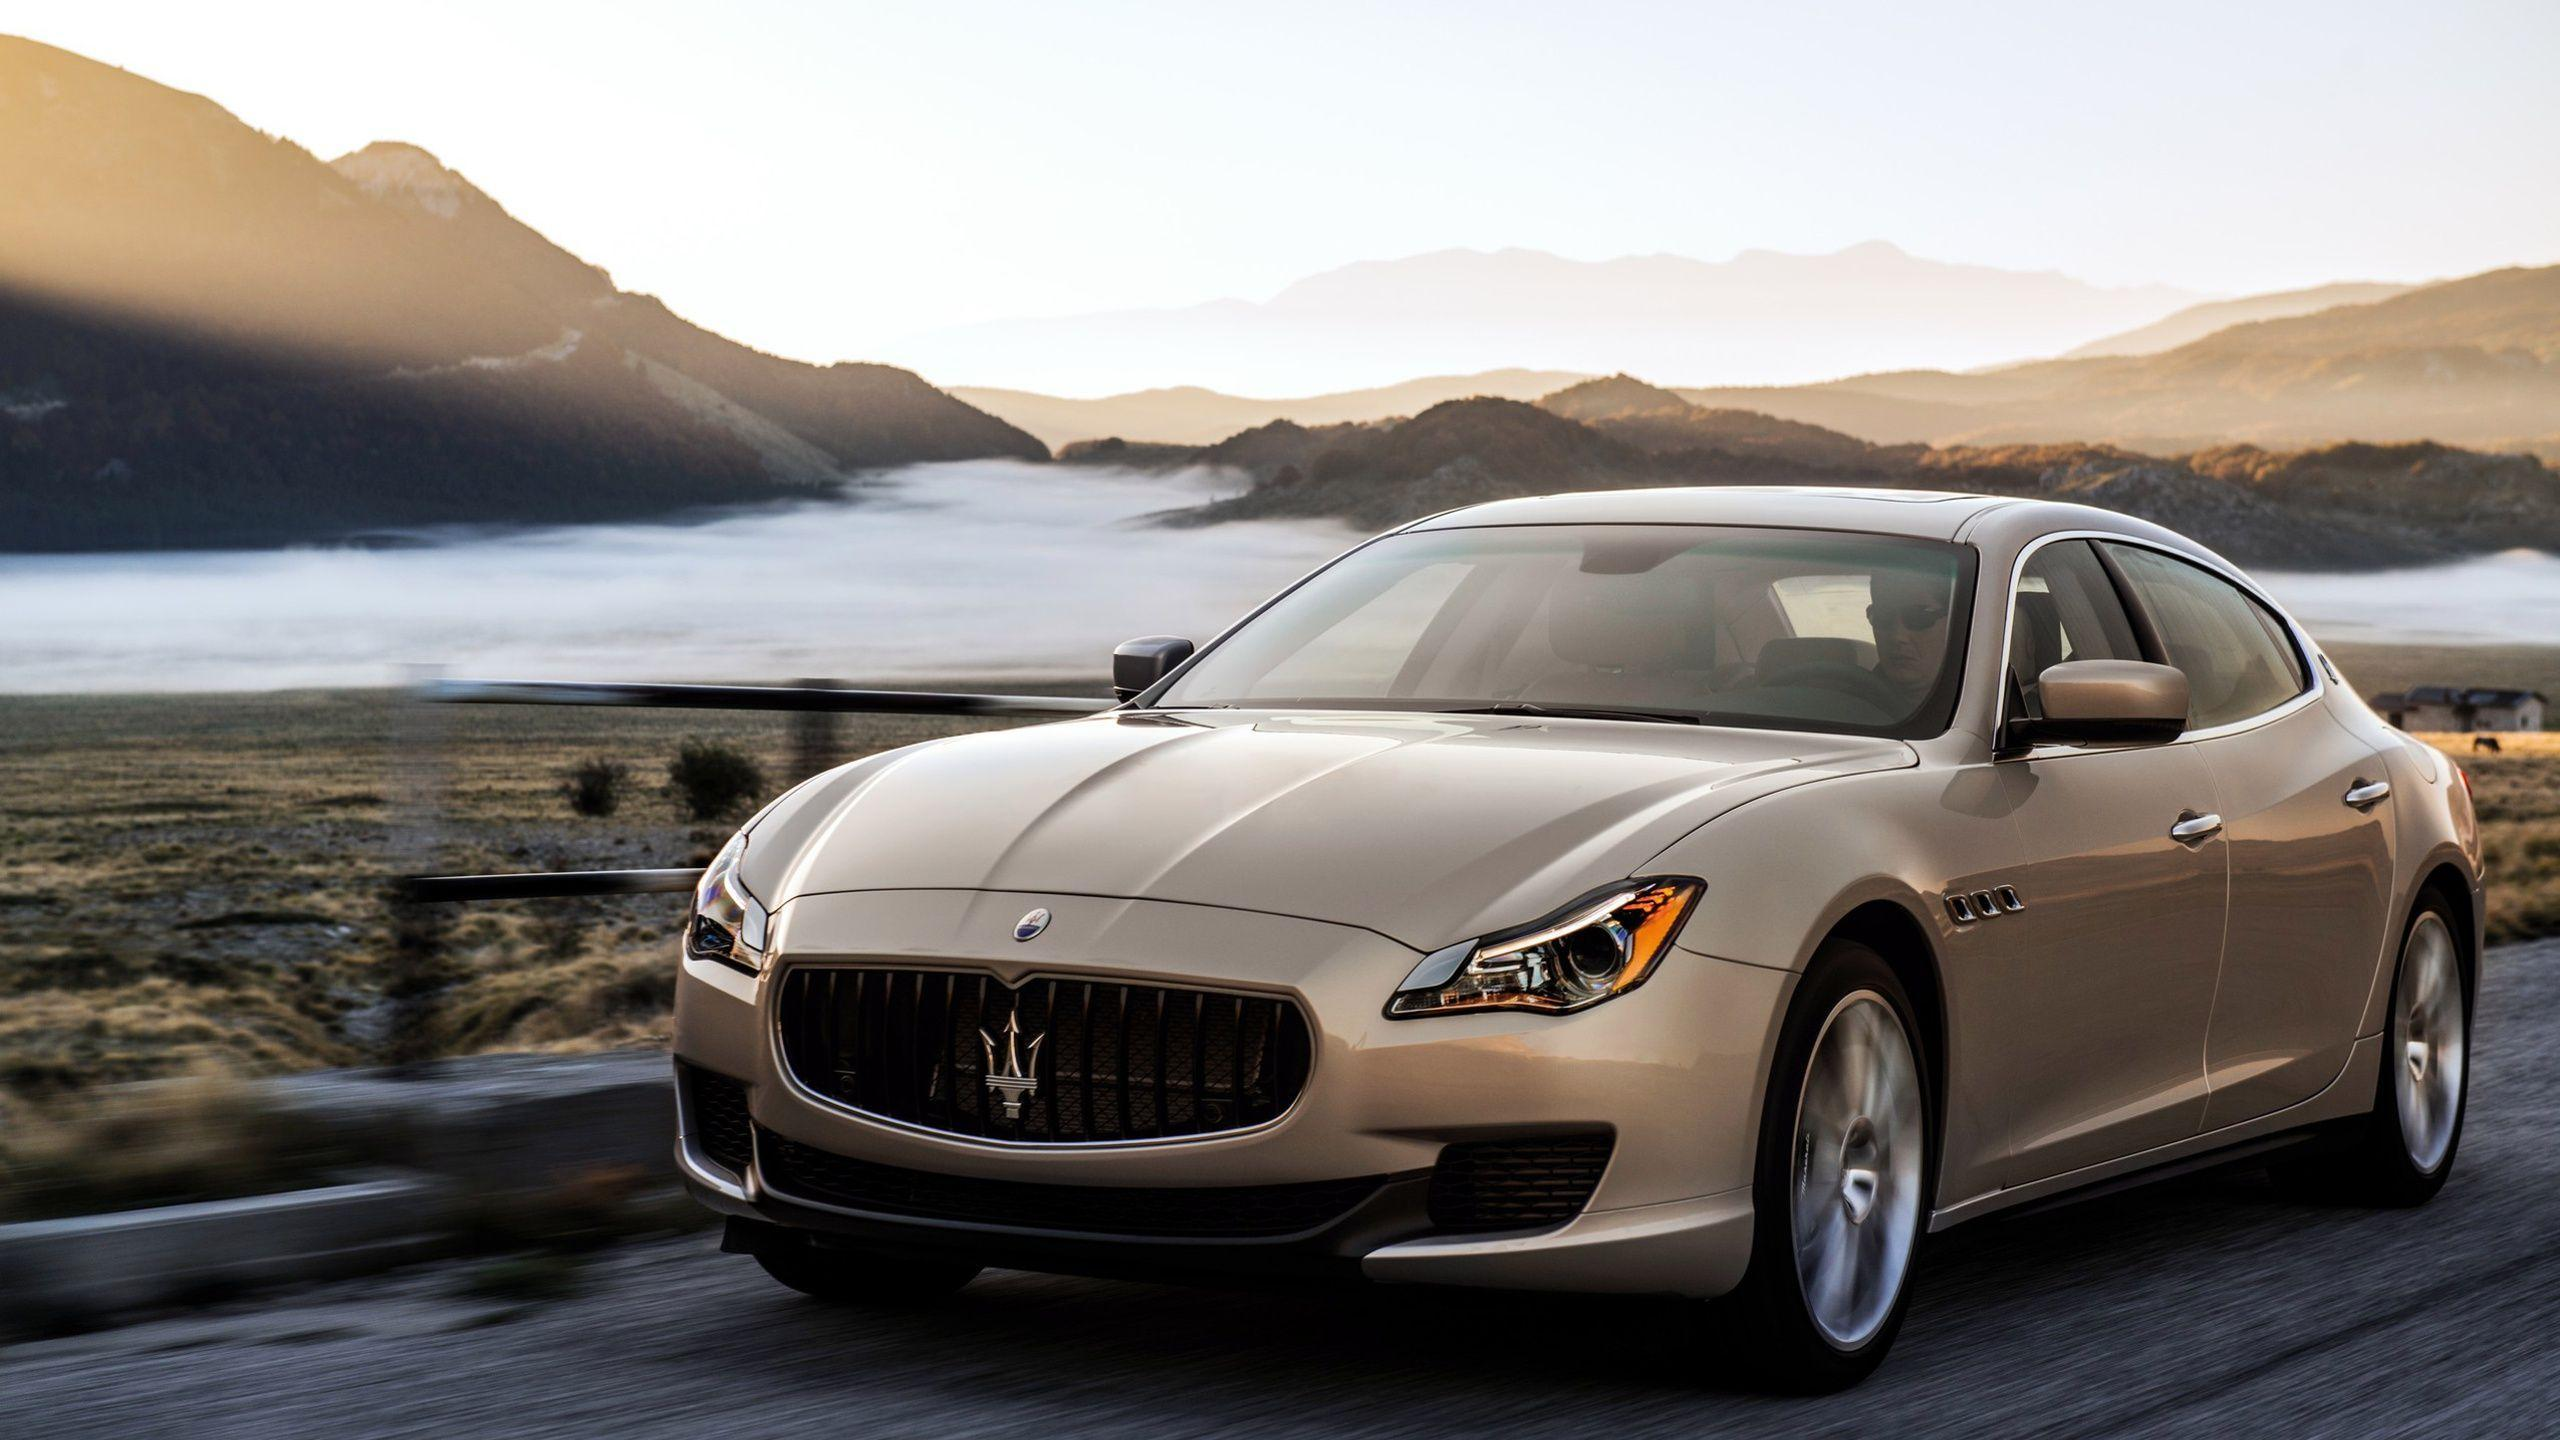 Maserati on HD Wallpapers backgrounds for your desktop. All ...